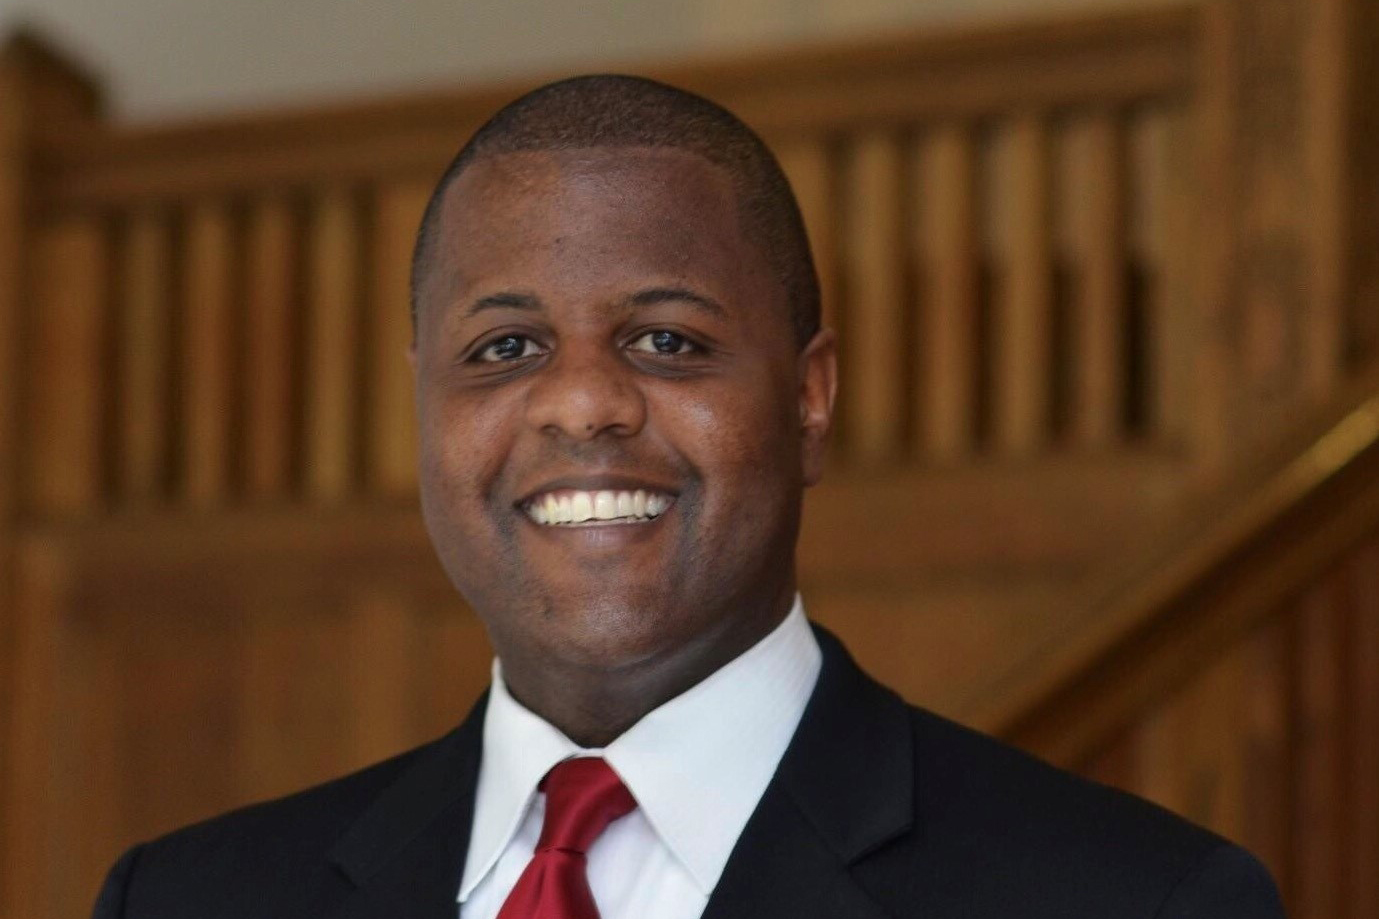 Formerly of Ohio State, Vern Granger has a record of worldwide outreach and an emphasis on diversity and accessibility.